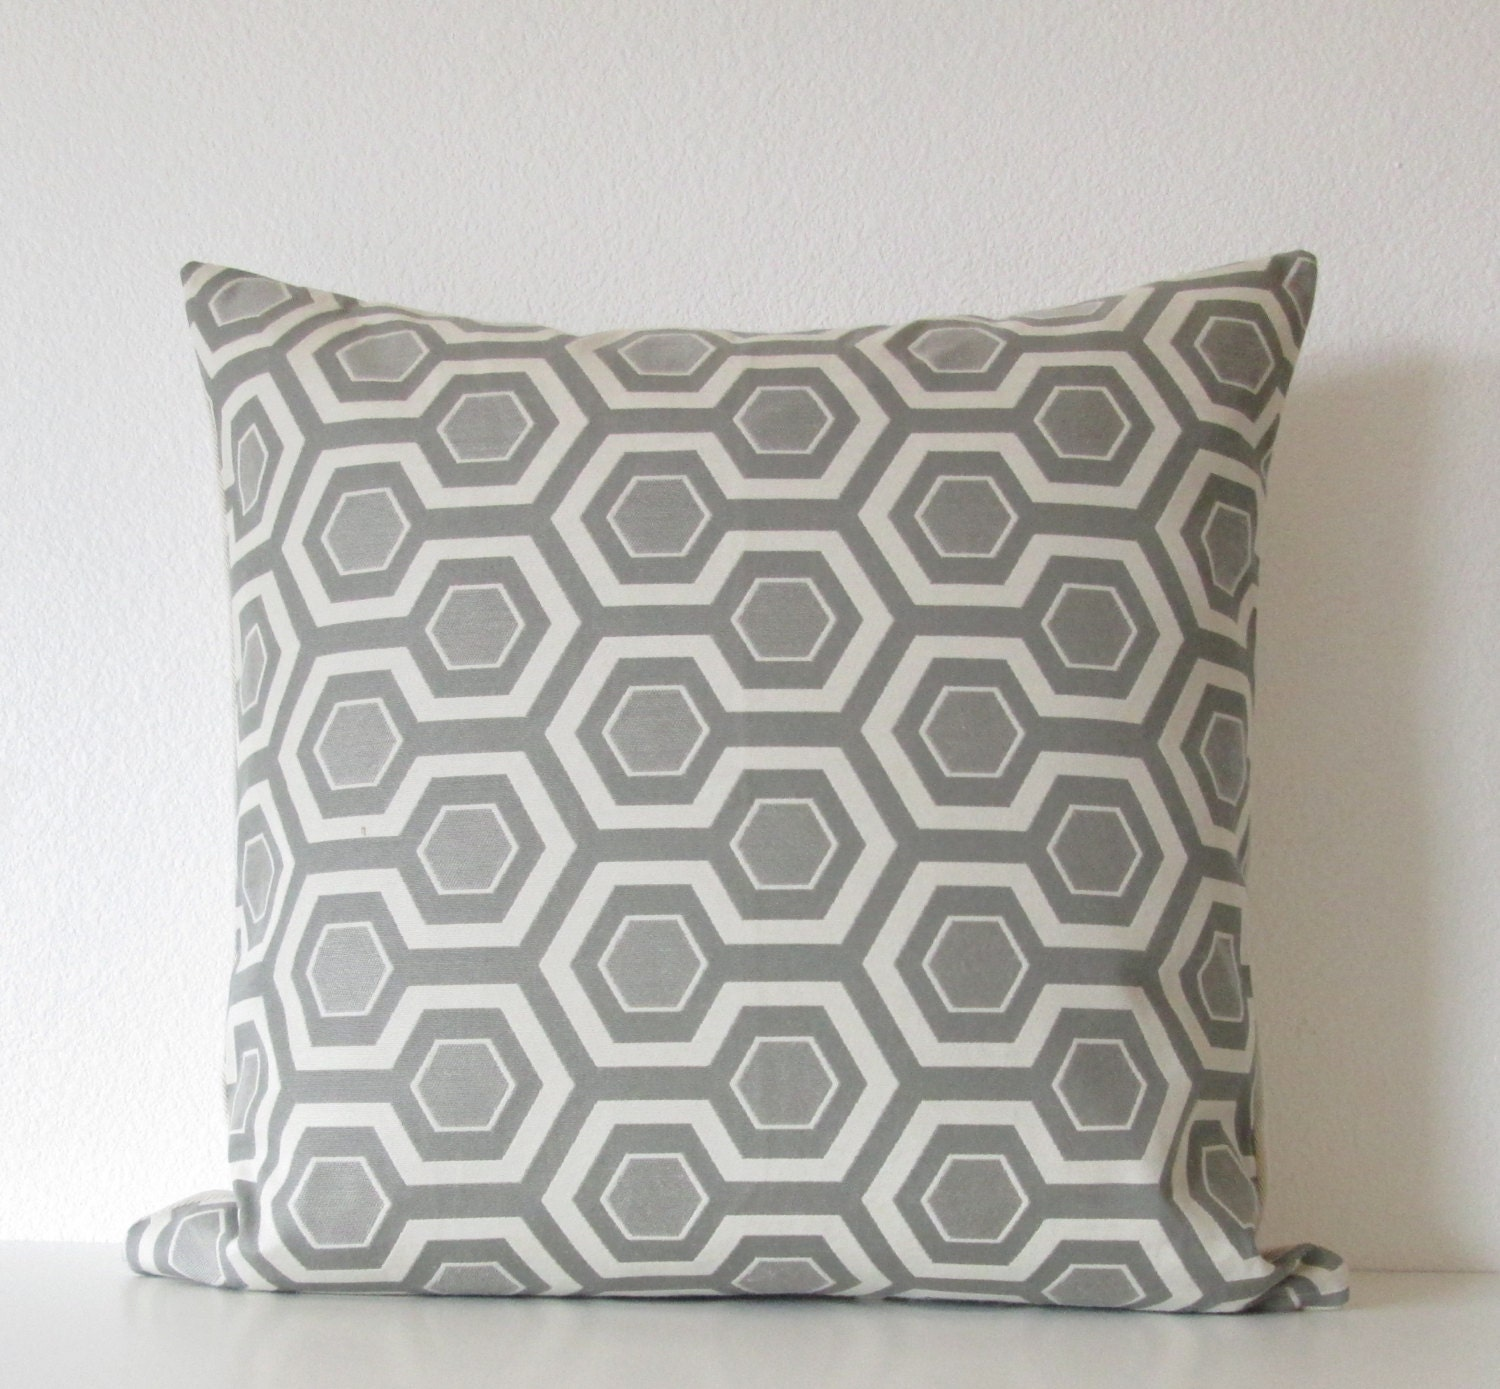 Black White And Gray Throw Pillows : CraftLaunch Site Inactive